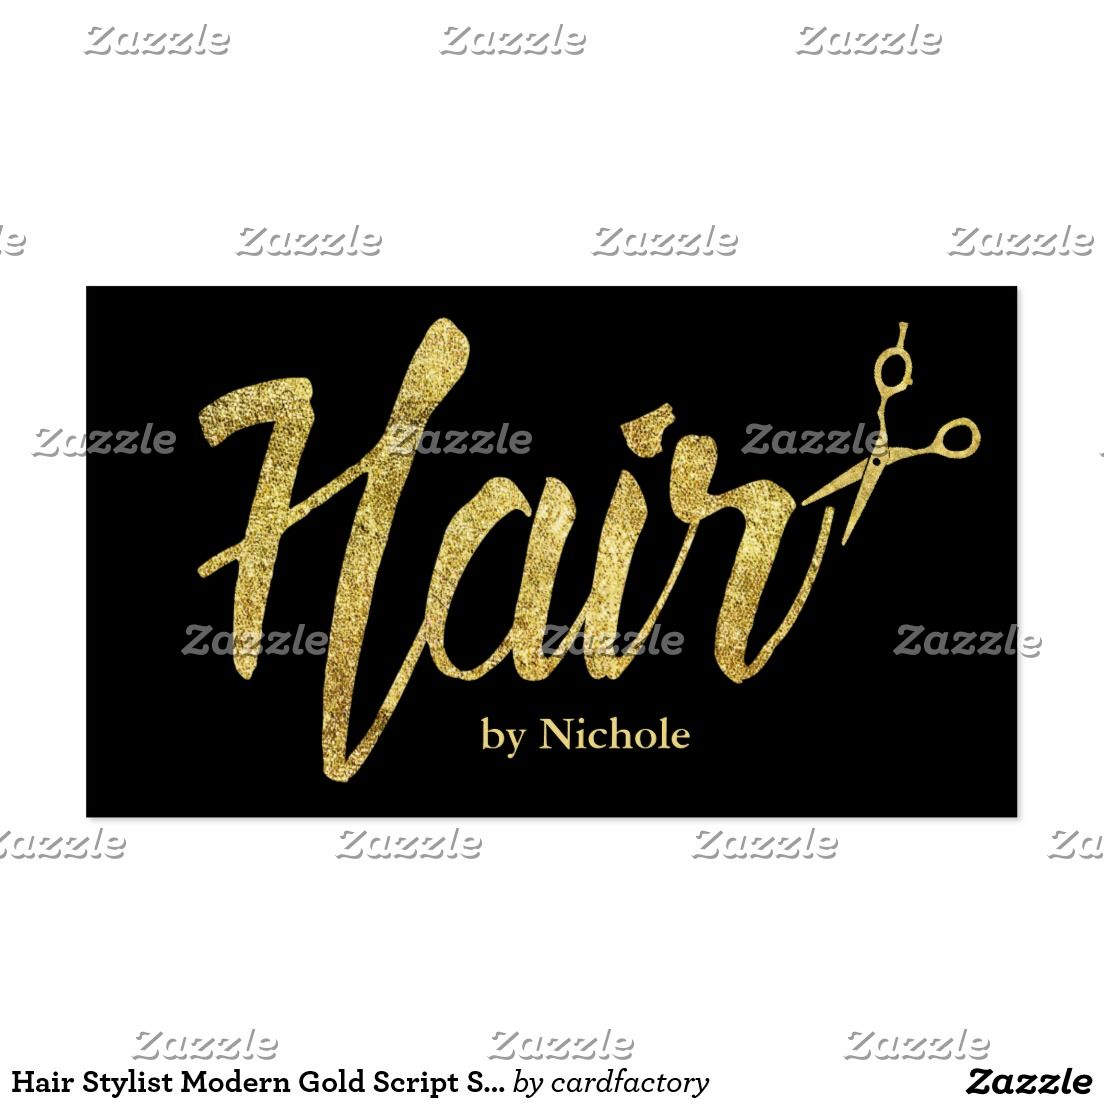 Hair Stylist Modern Gold Script Salon Appointment   Appointments ...